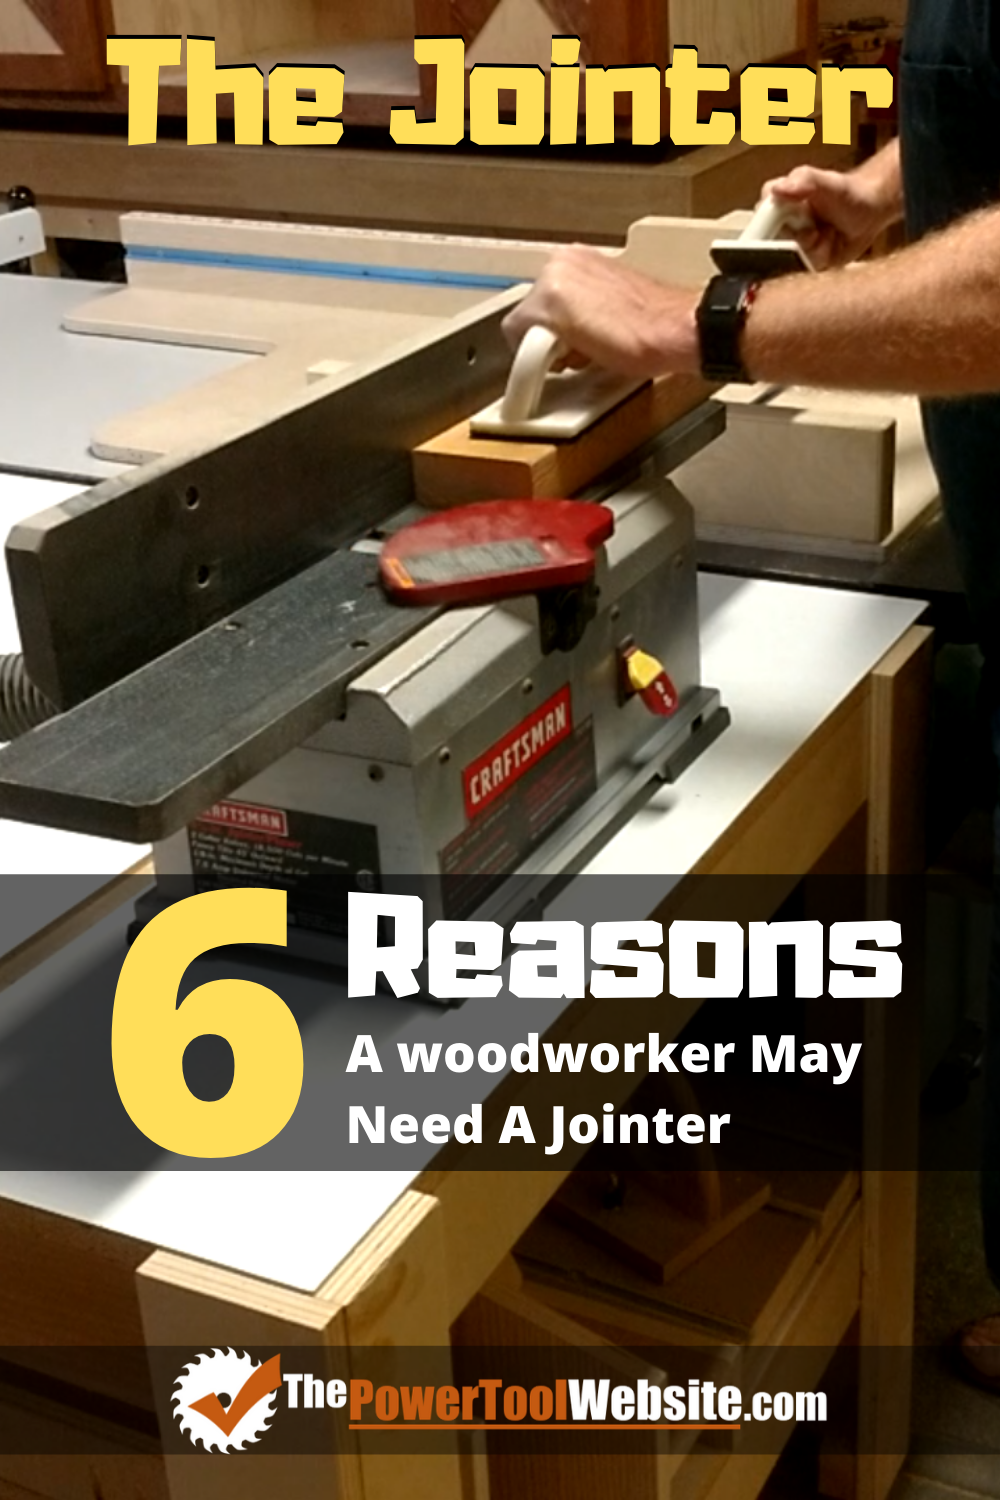 6 Reasons A Woodworker May Need a Jointer